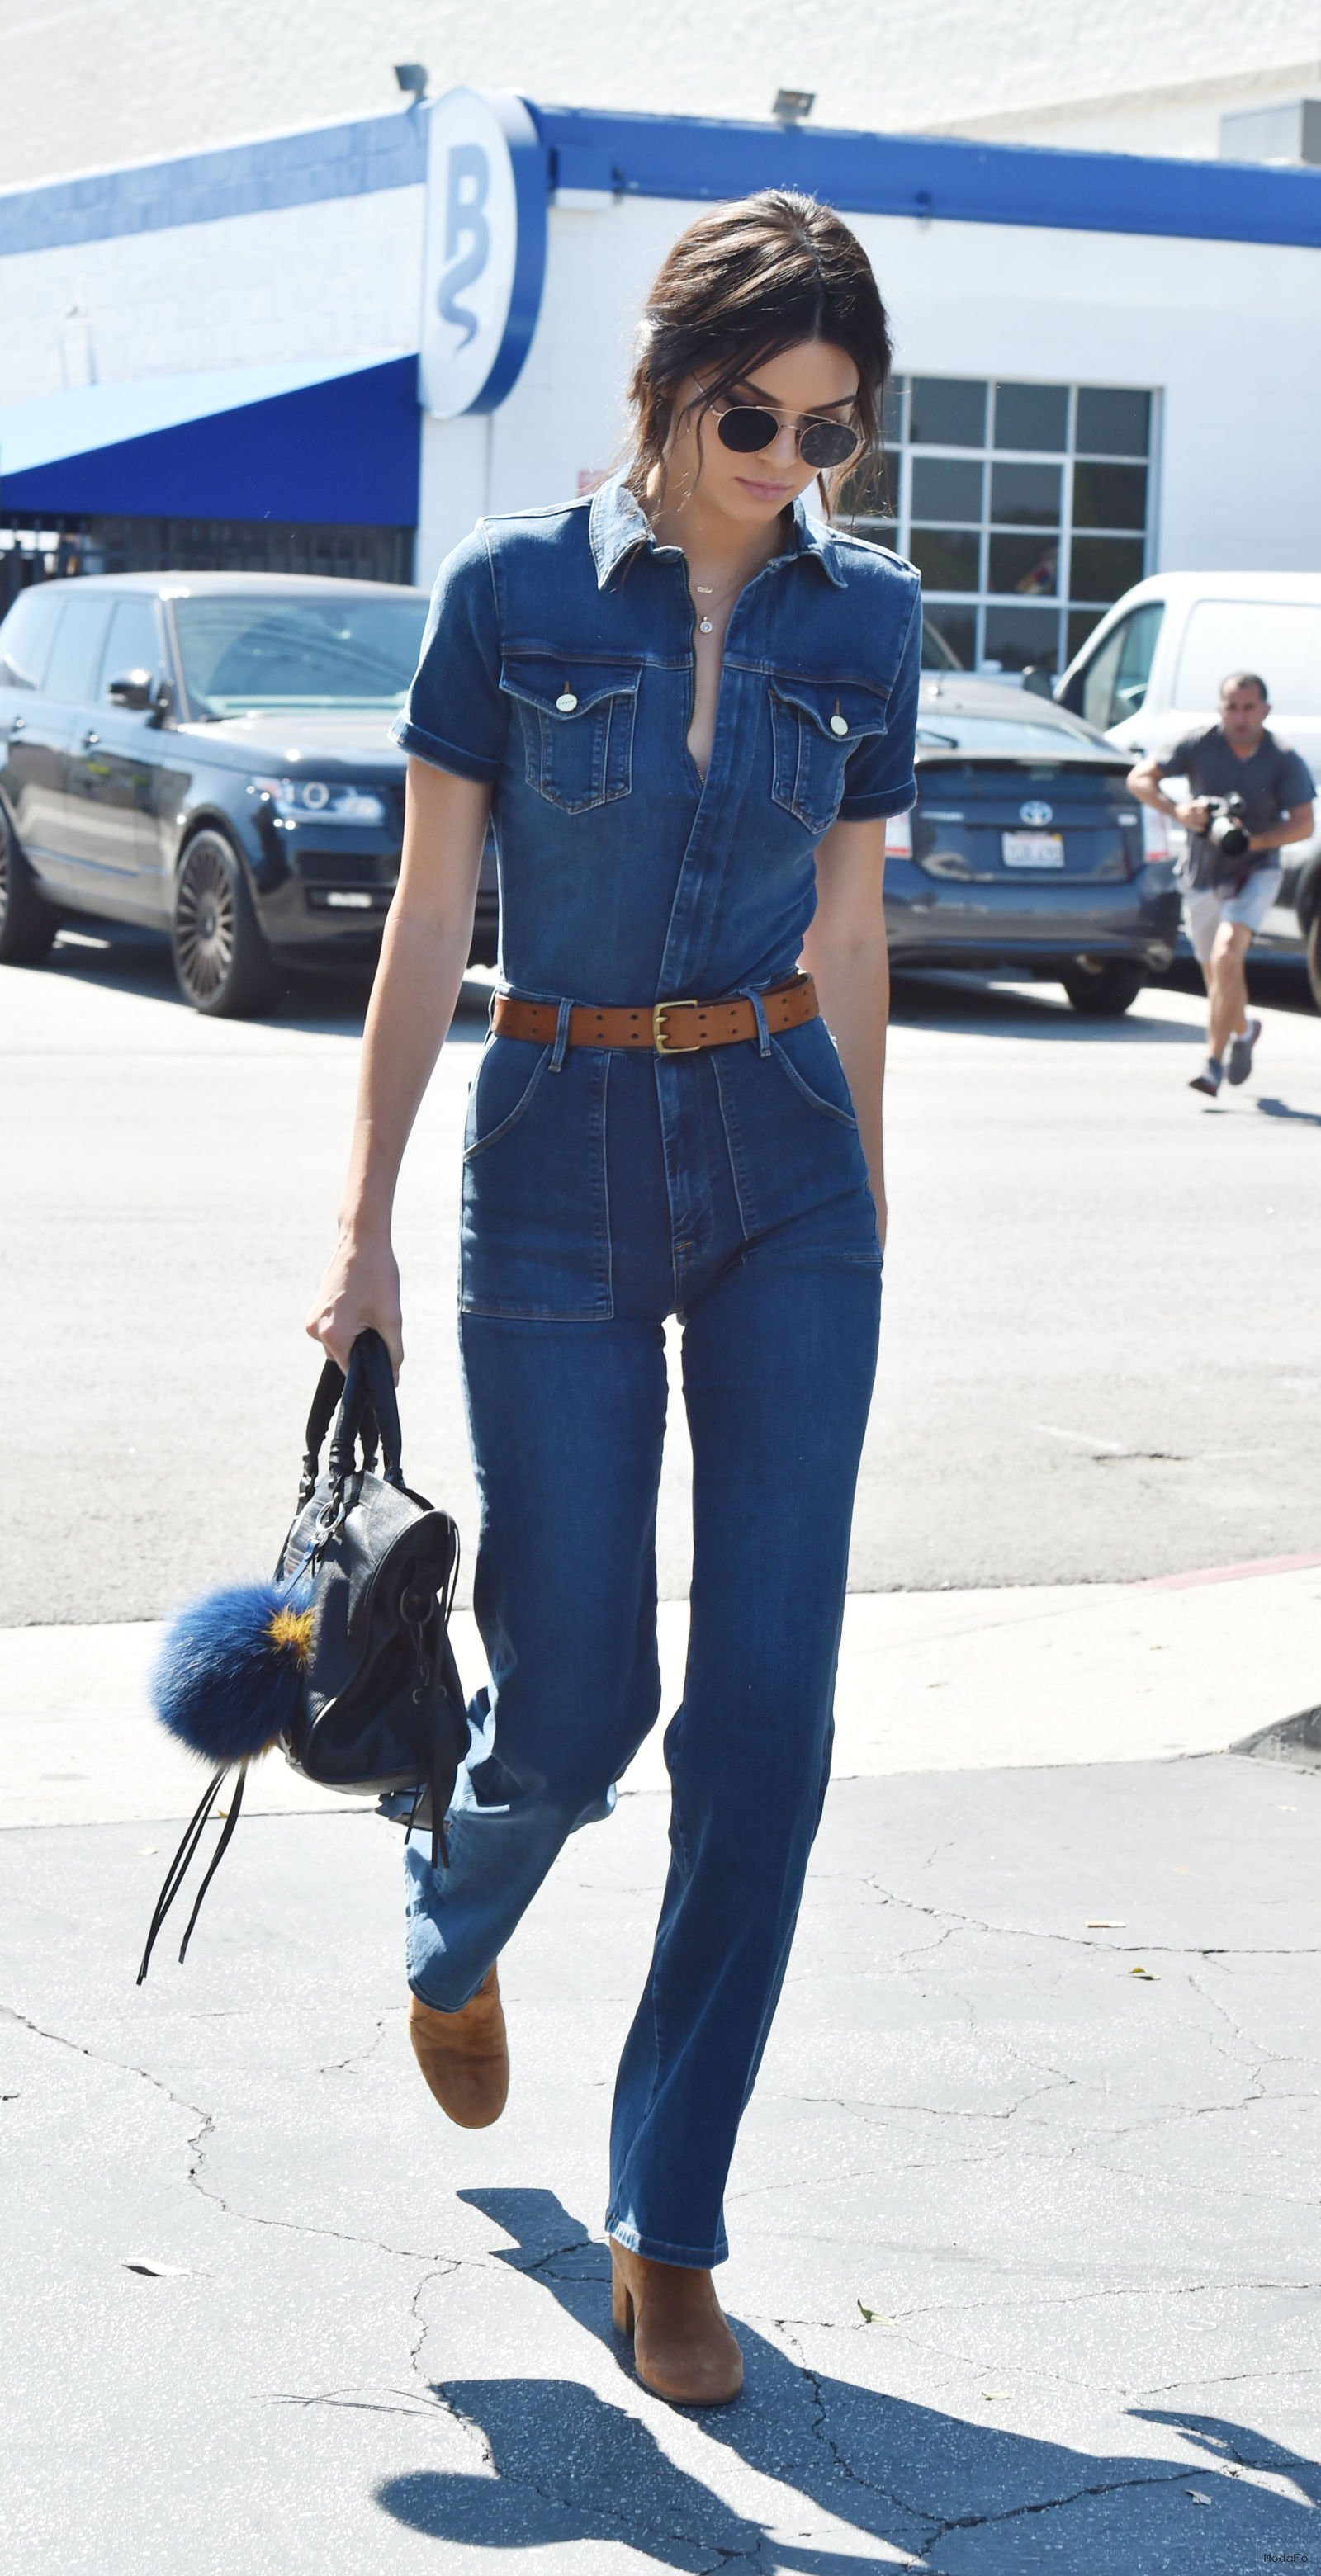 Kendall Jenner Fashion Style – Kendall Jenner's Best Outfits ... - Kendall Jenner tarzı Kendall Jenner kombinleri Kendall Jenner kombin Kendall Jenner giyim tarzı Kendall Jenner giyim Kendall Jenner 2016 Kendall Jenner Giyim tarzı 2016 Kendall Jenner